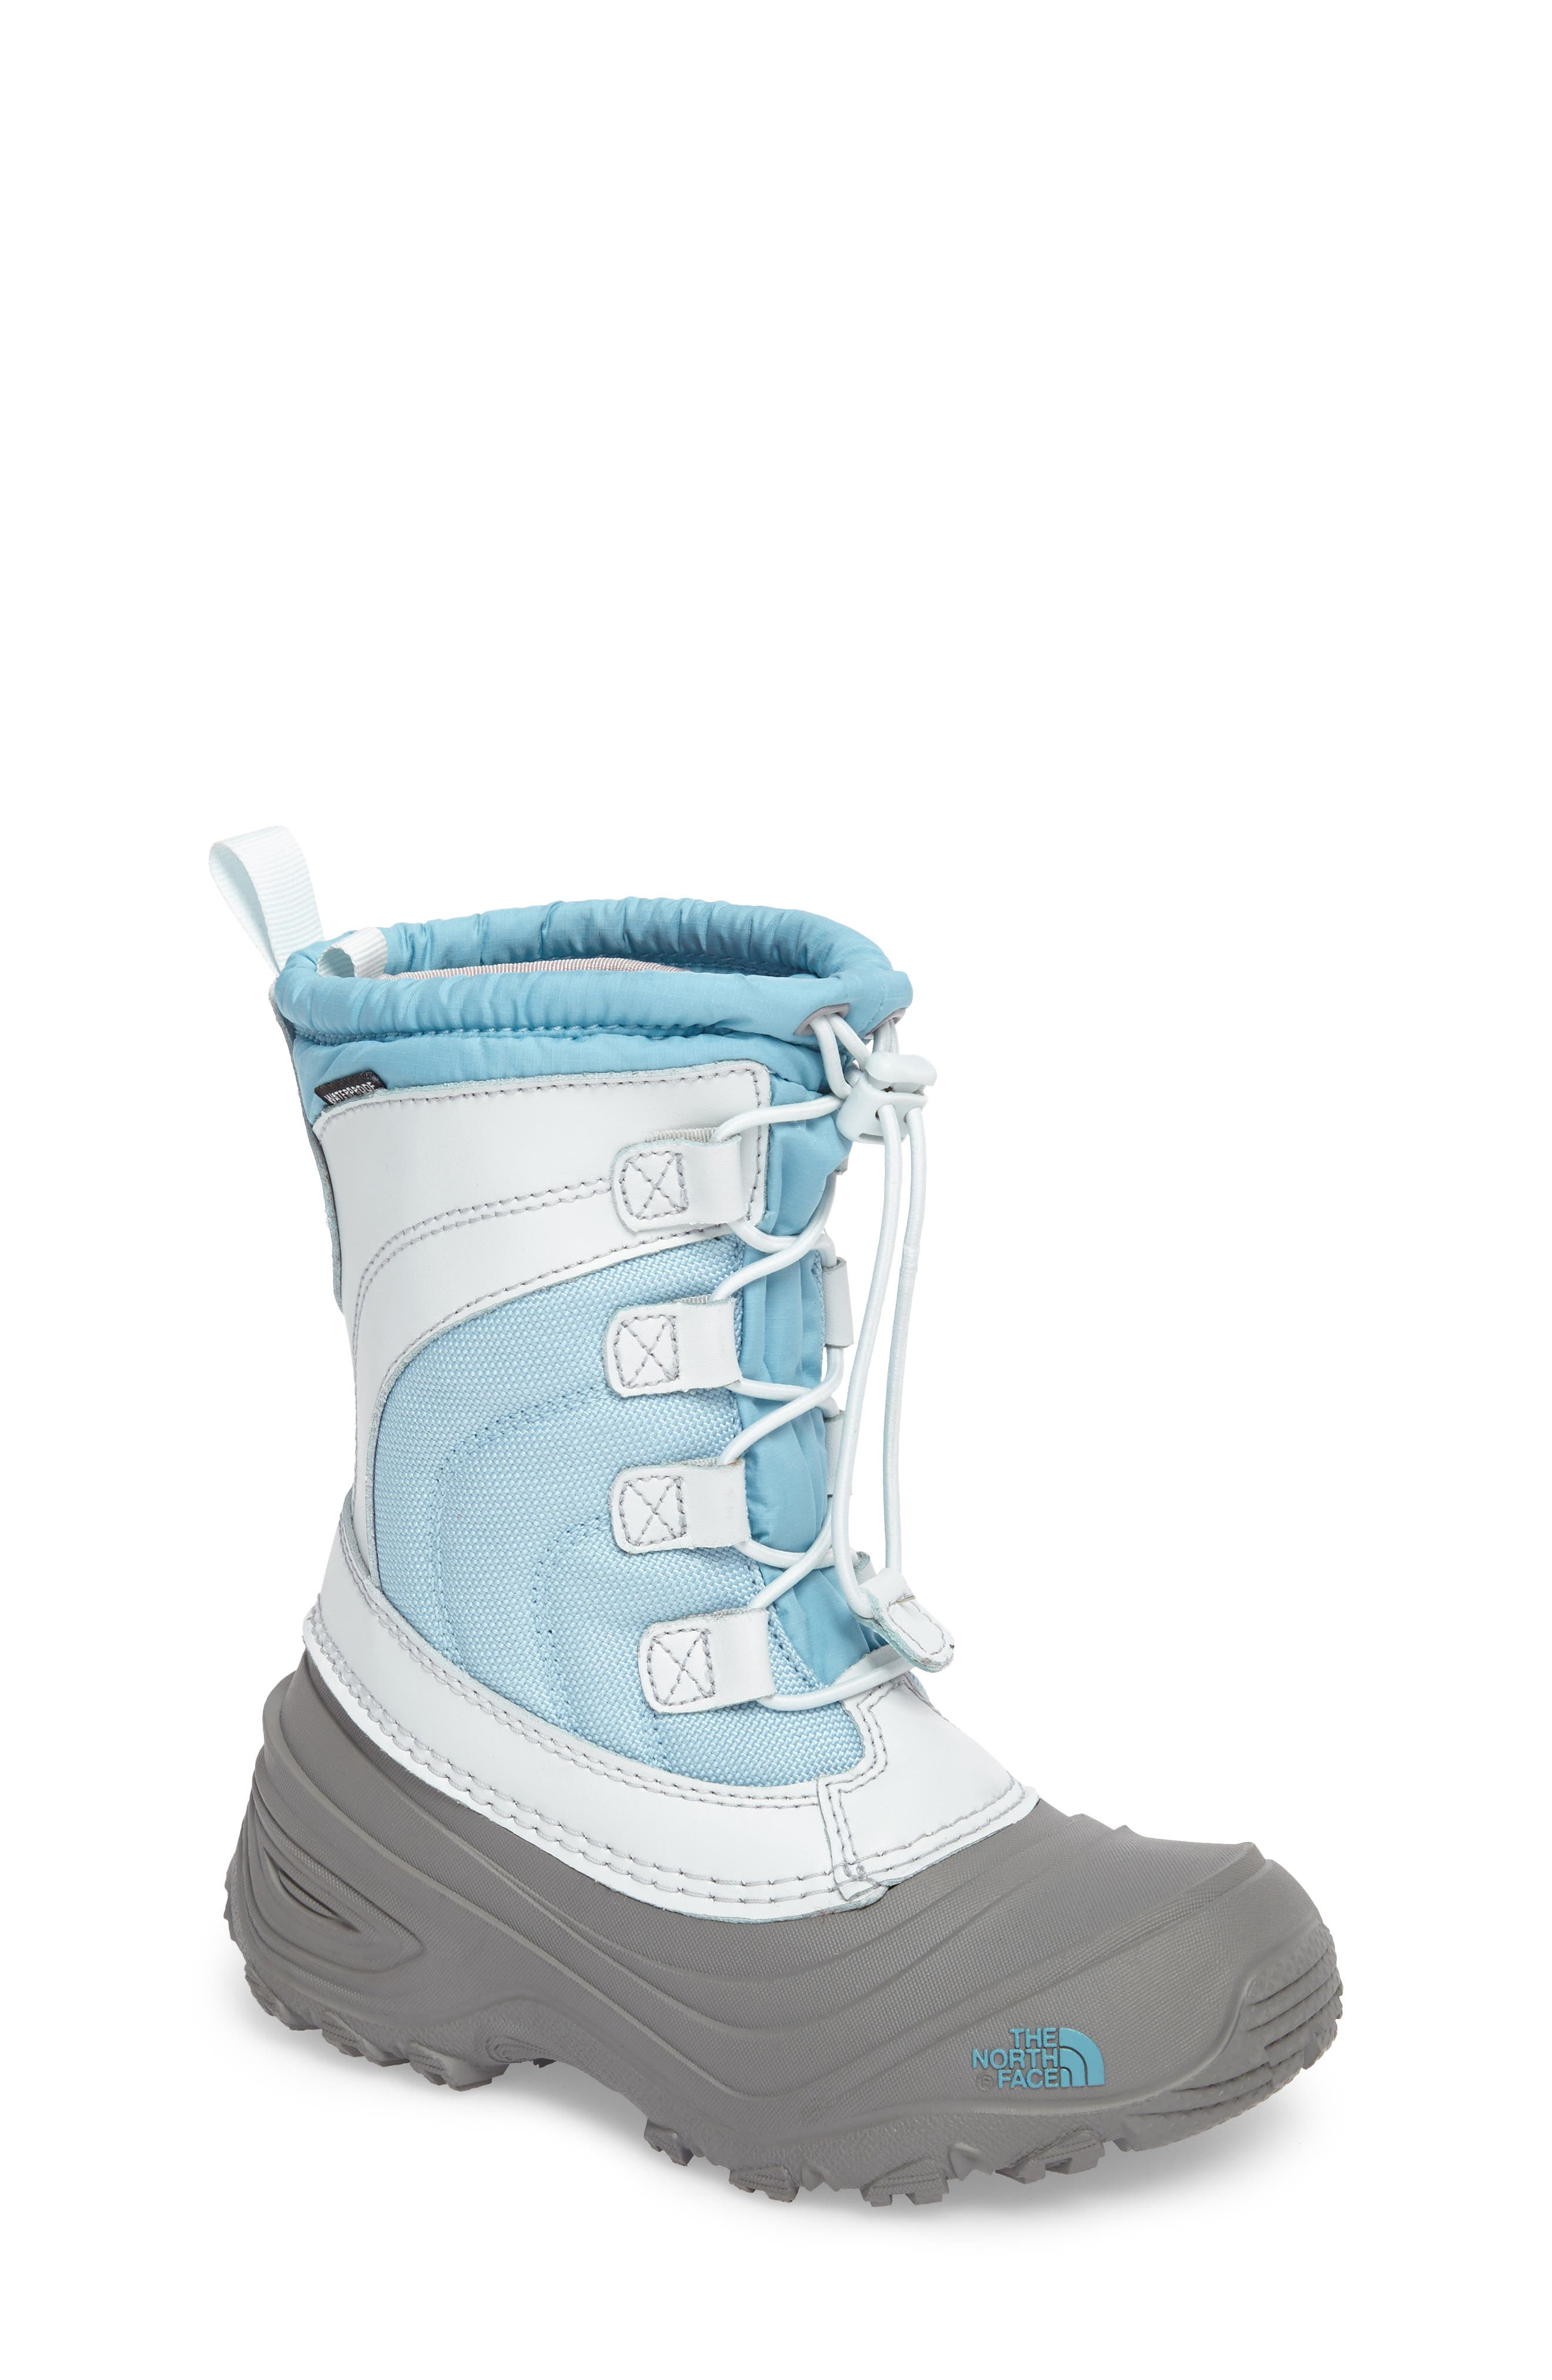 Alpenglow IV Waterproof Insulated Winter Boot,                             Main thumbnail 1, color,                             Blizzard Blue/ Ice Blue